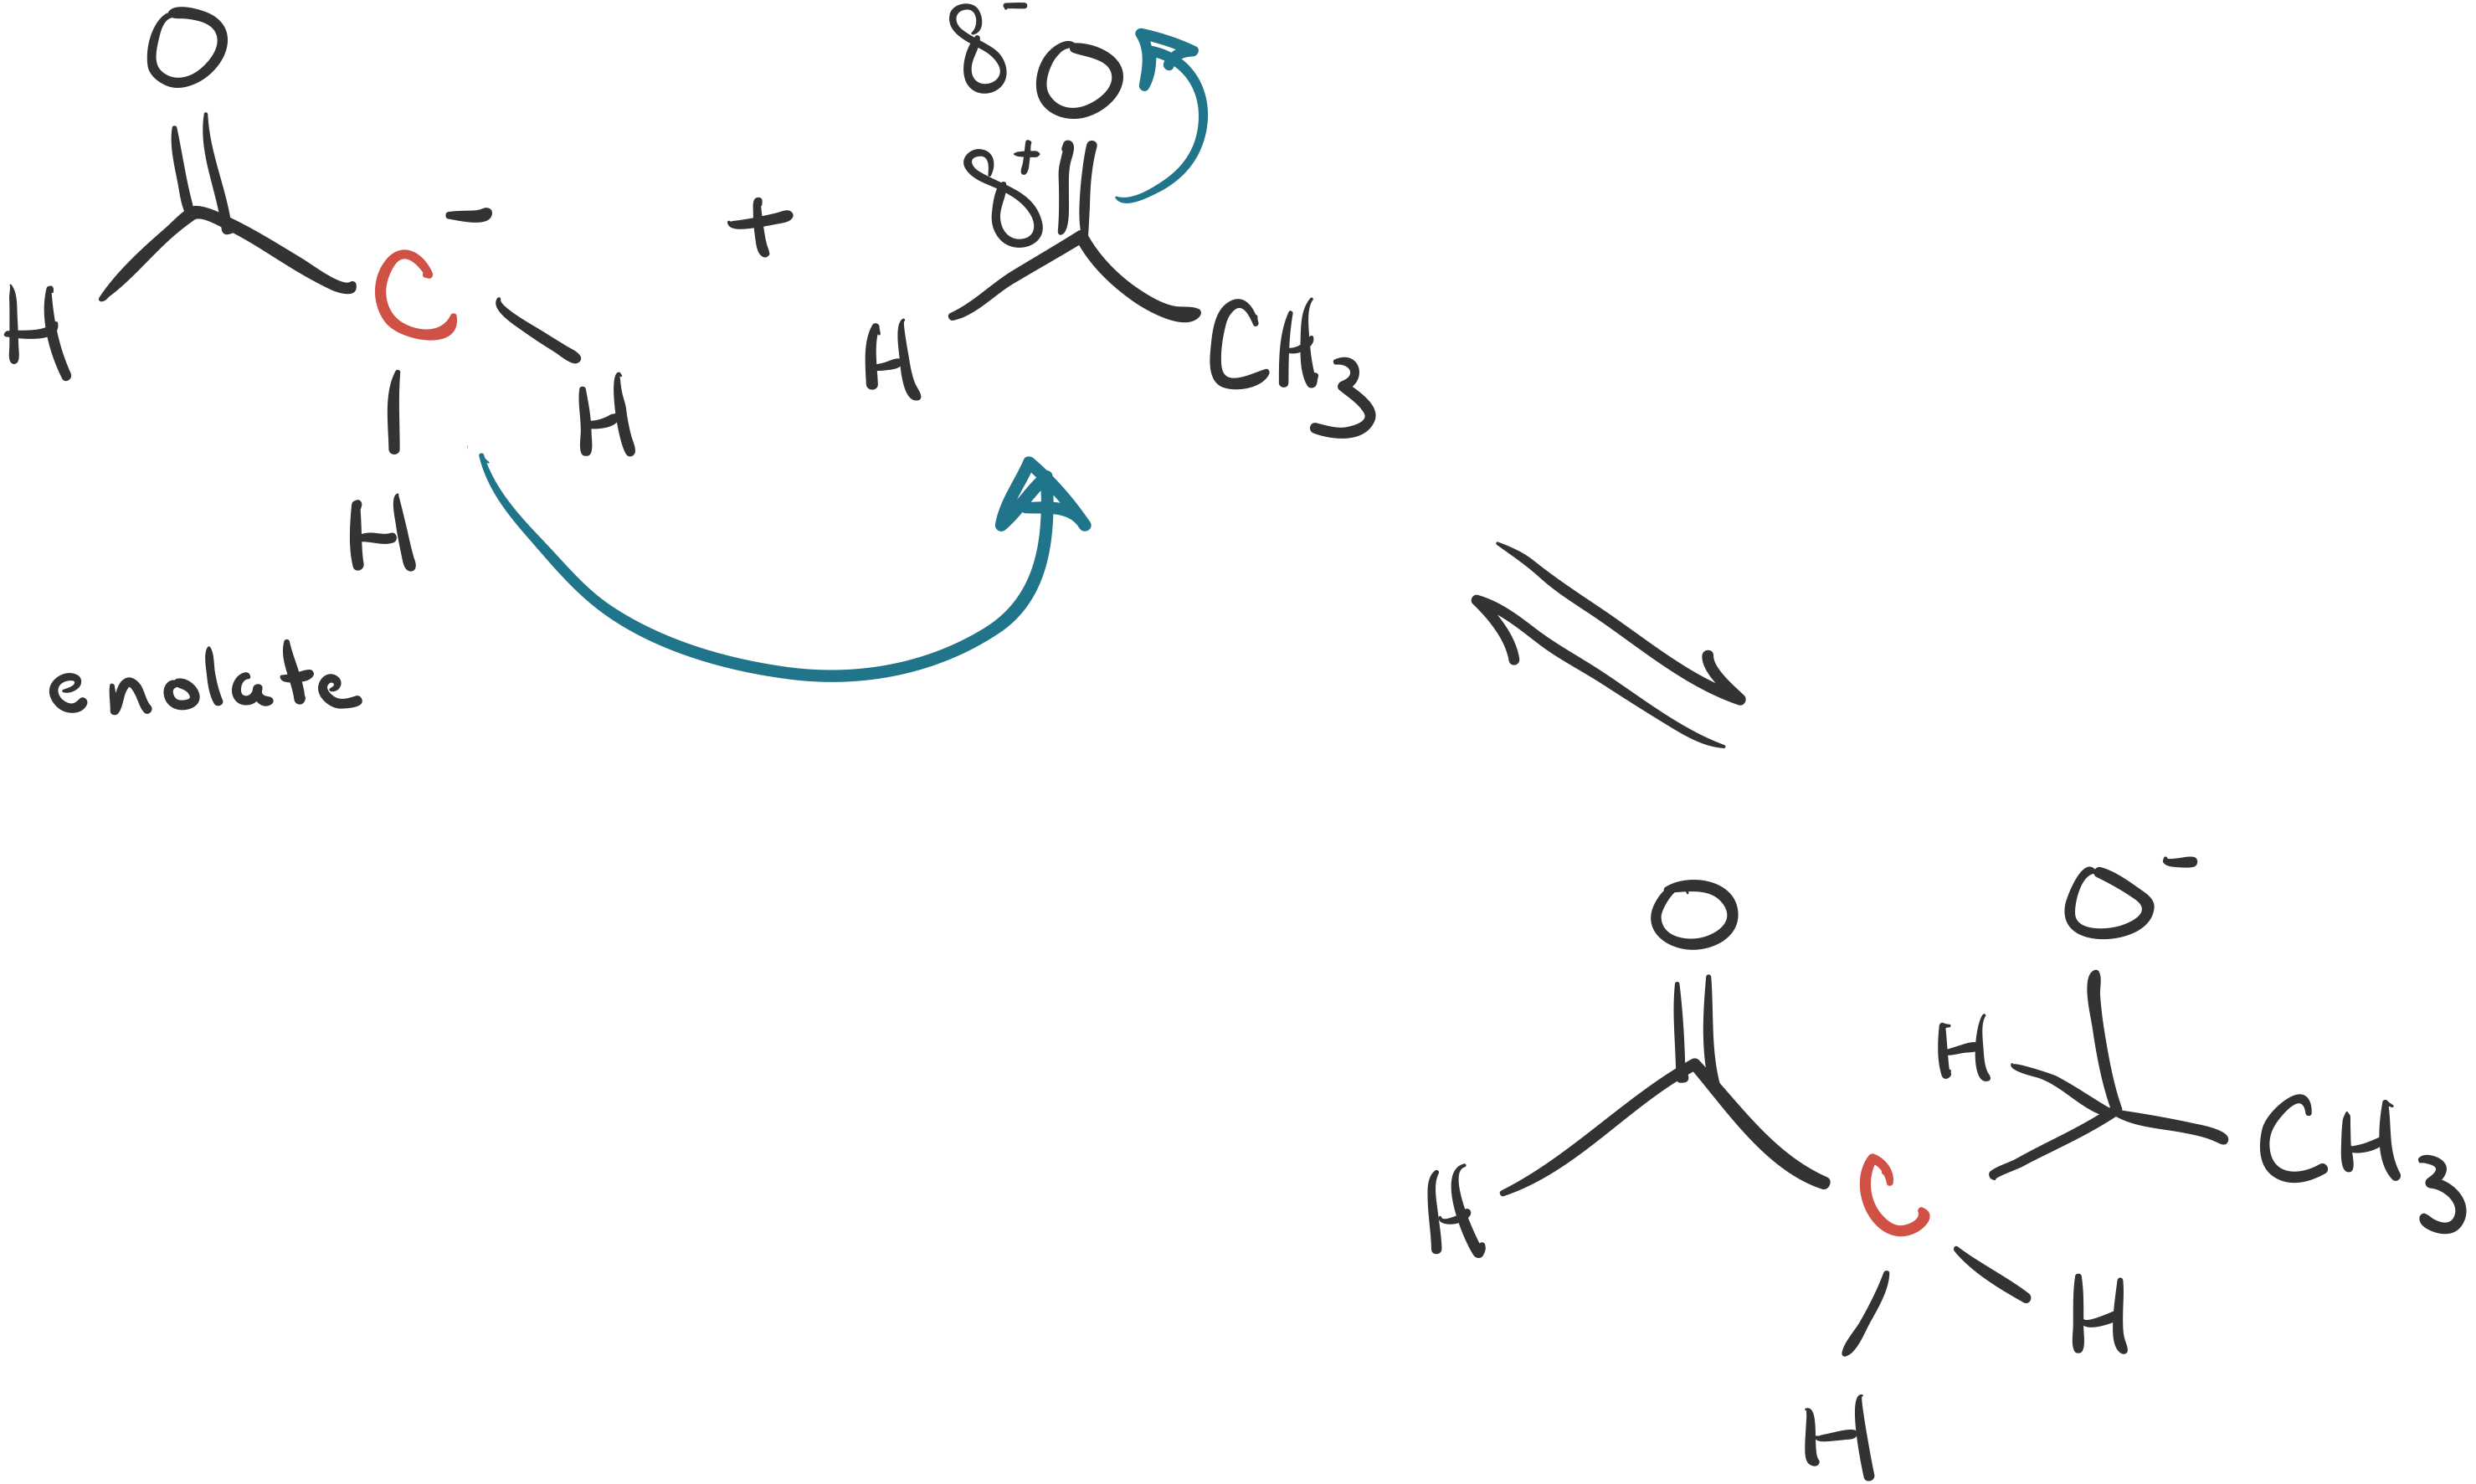 Step 2: The enolate of acetaldehyde (formed in step 1